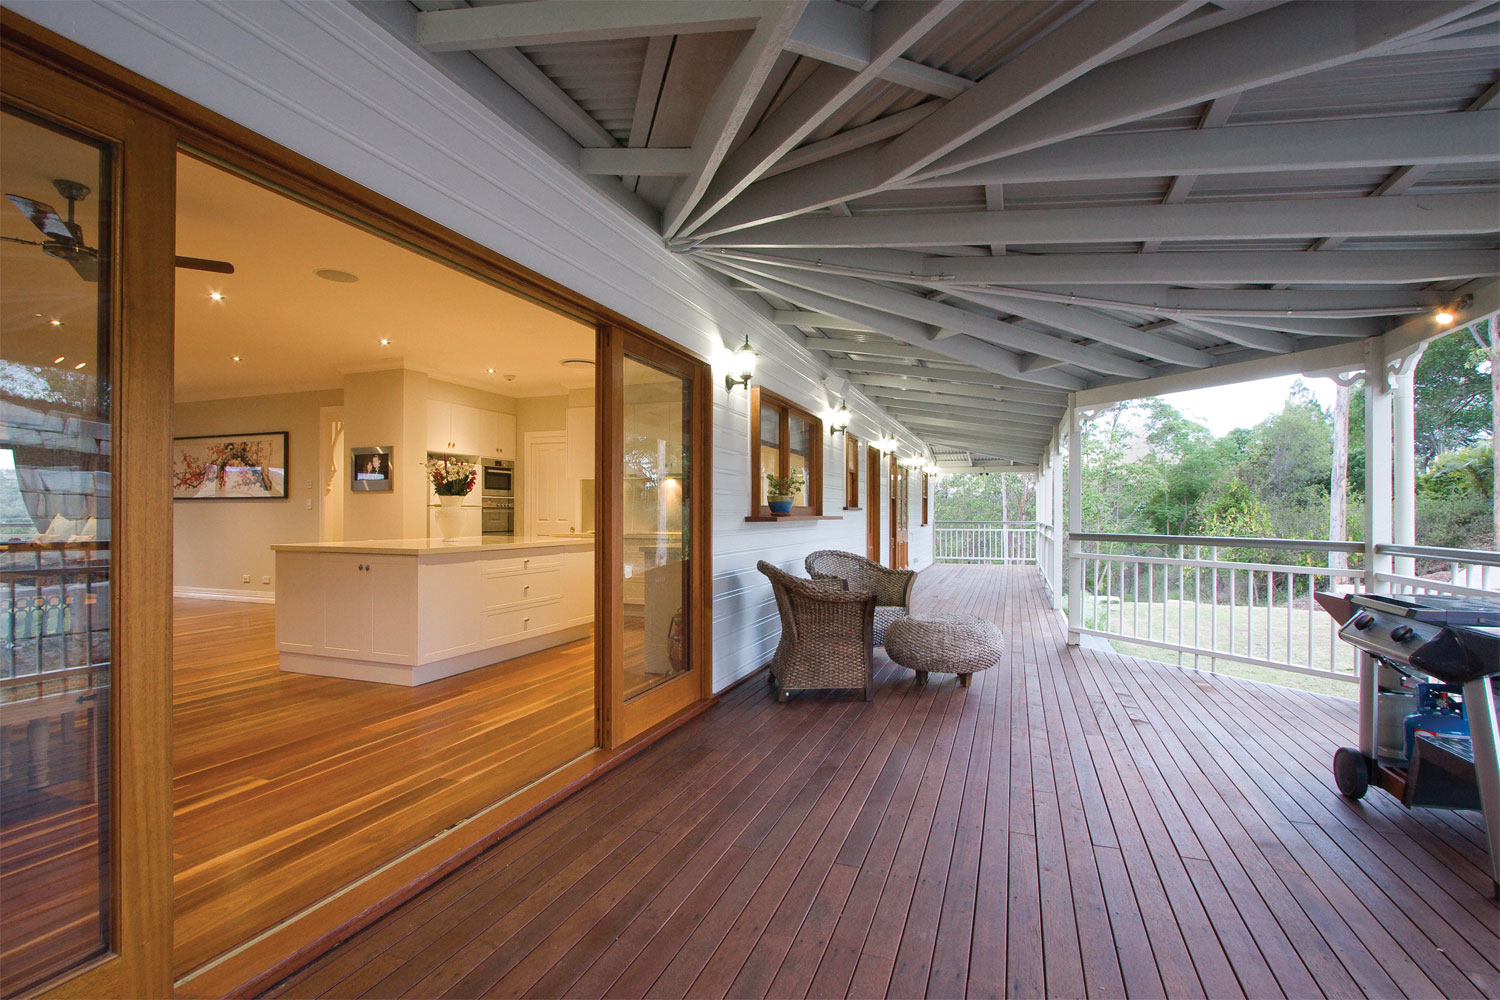 The high life traditional queenslander home contemporary for Classic home designs australia